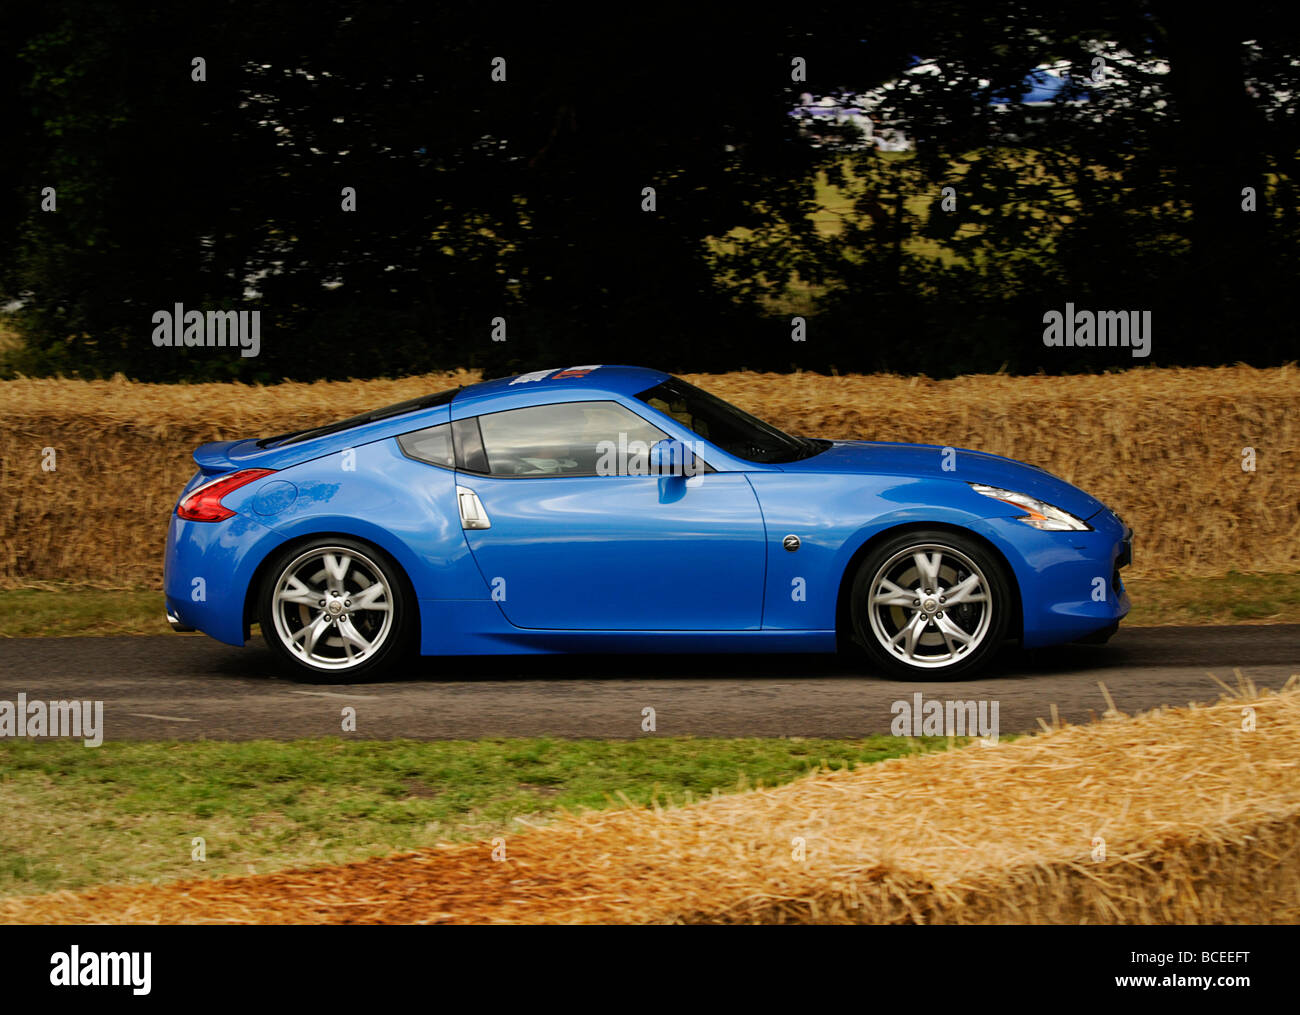 Nissan 370Z At 2009 Goodwood Festival Of Speed   Stock Image